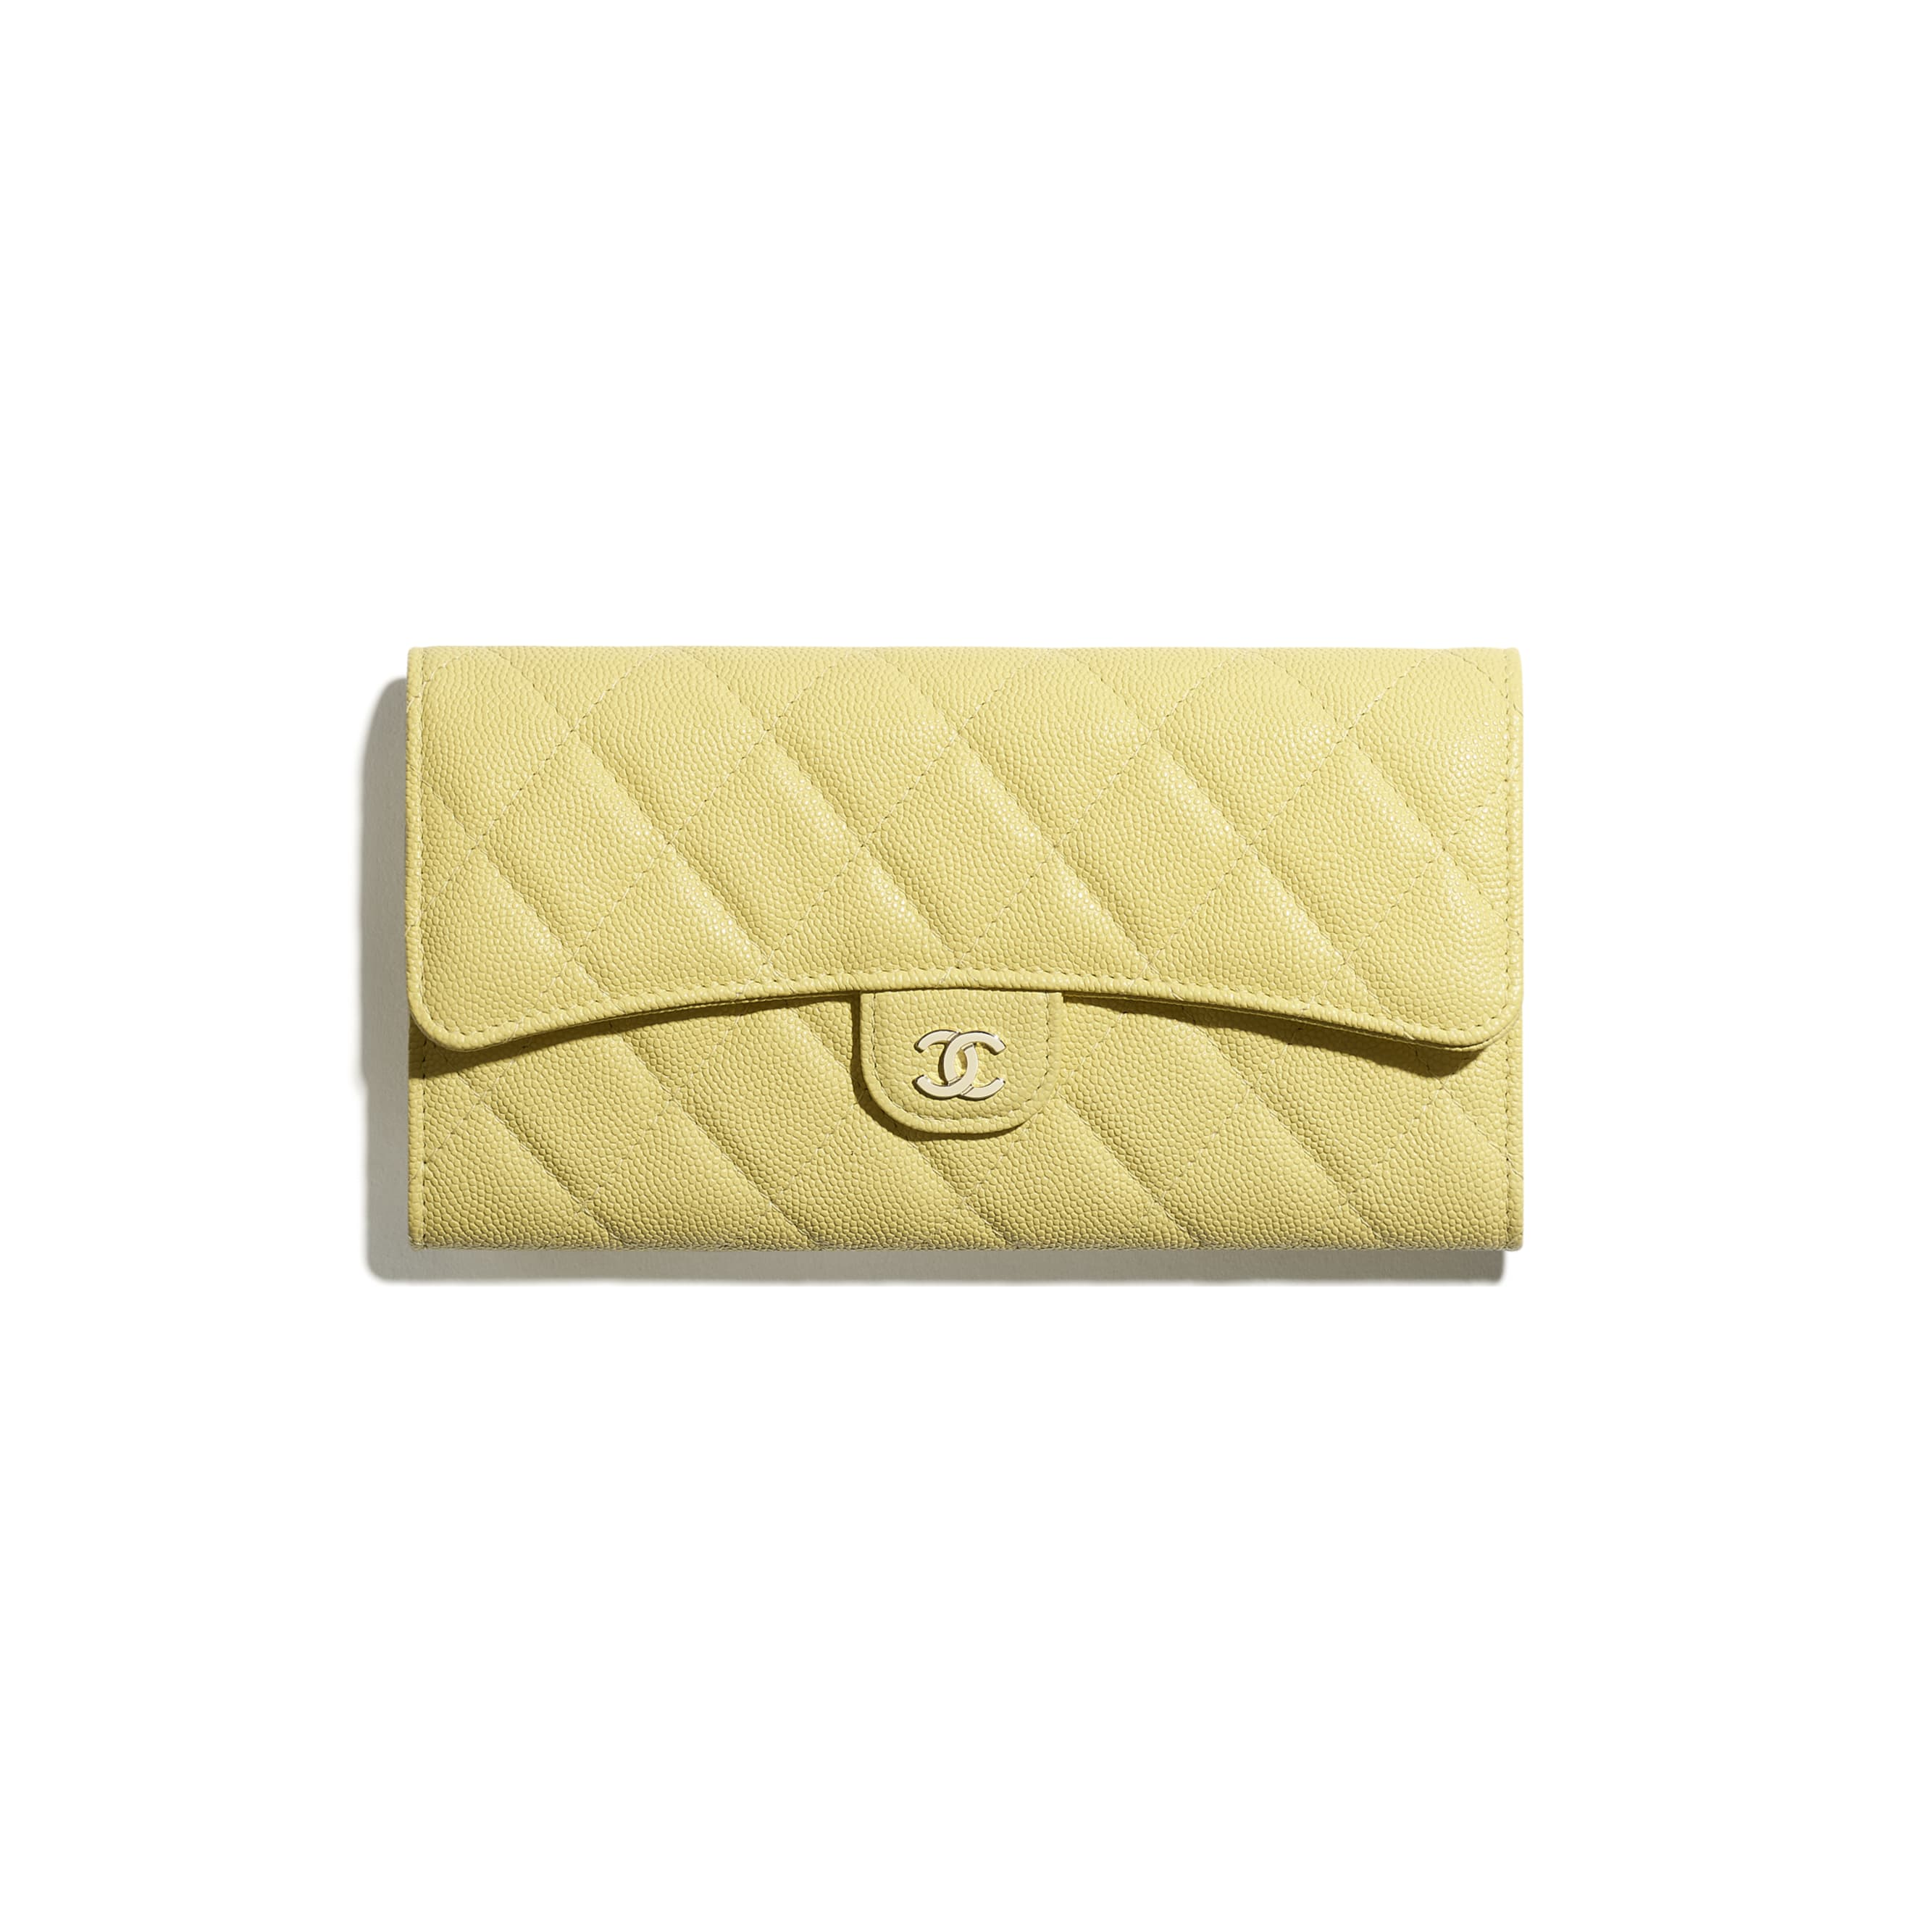 Classic Long Flap Wallet - Yellow - Grained Calfskin & Gold-Tone Metal - CHANEL - Default view - see standard sized version